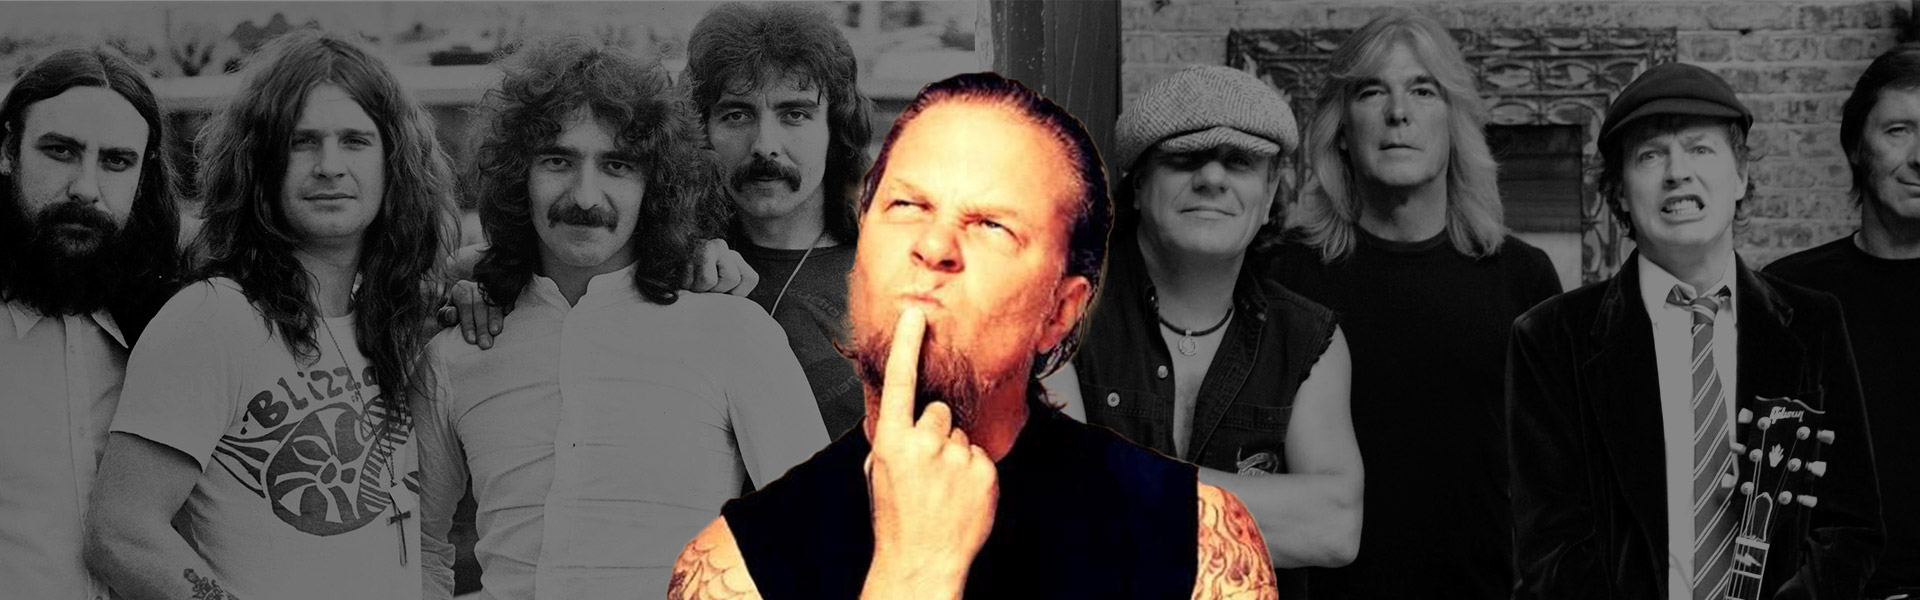 trivia-bandas-rock-metal-integrantes